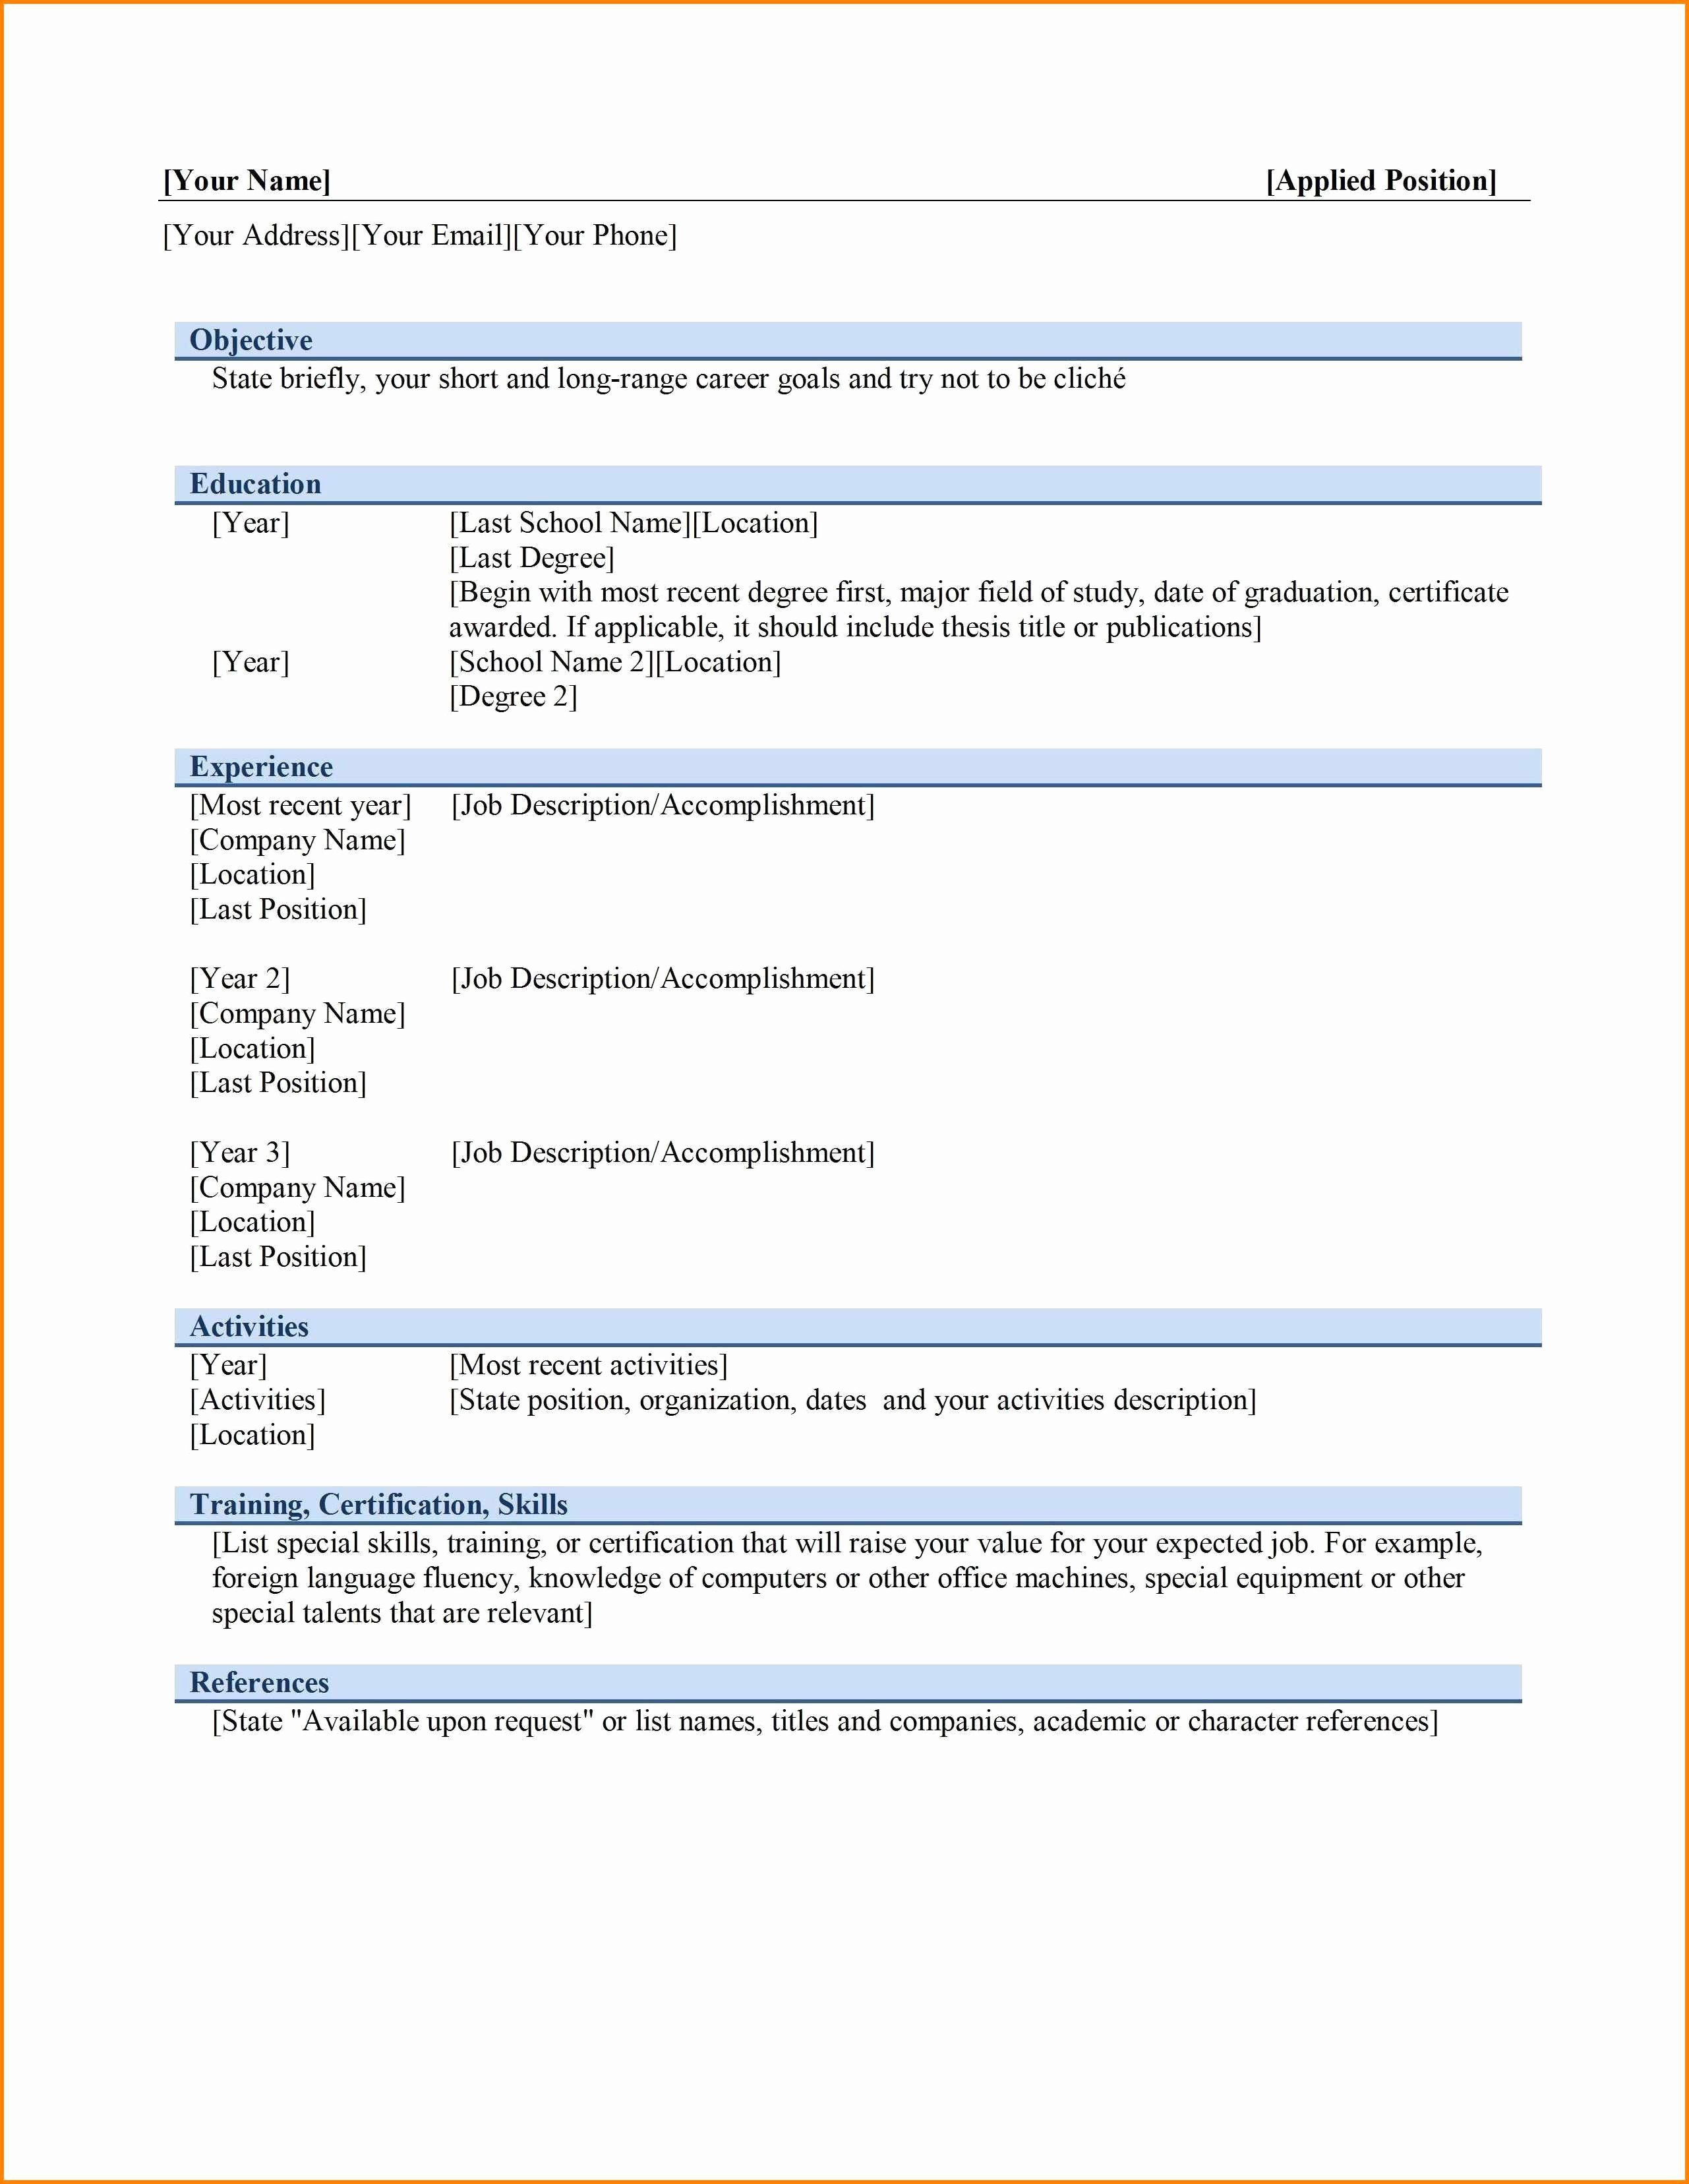 Resume format In Microsoft Word Inspirational 6 Best Cv format In Ms Word